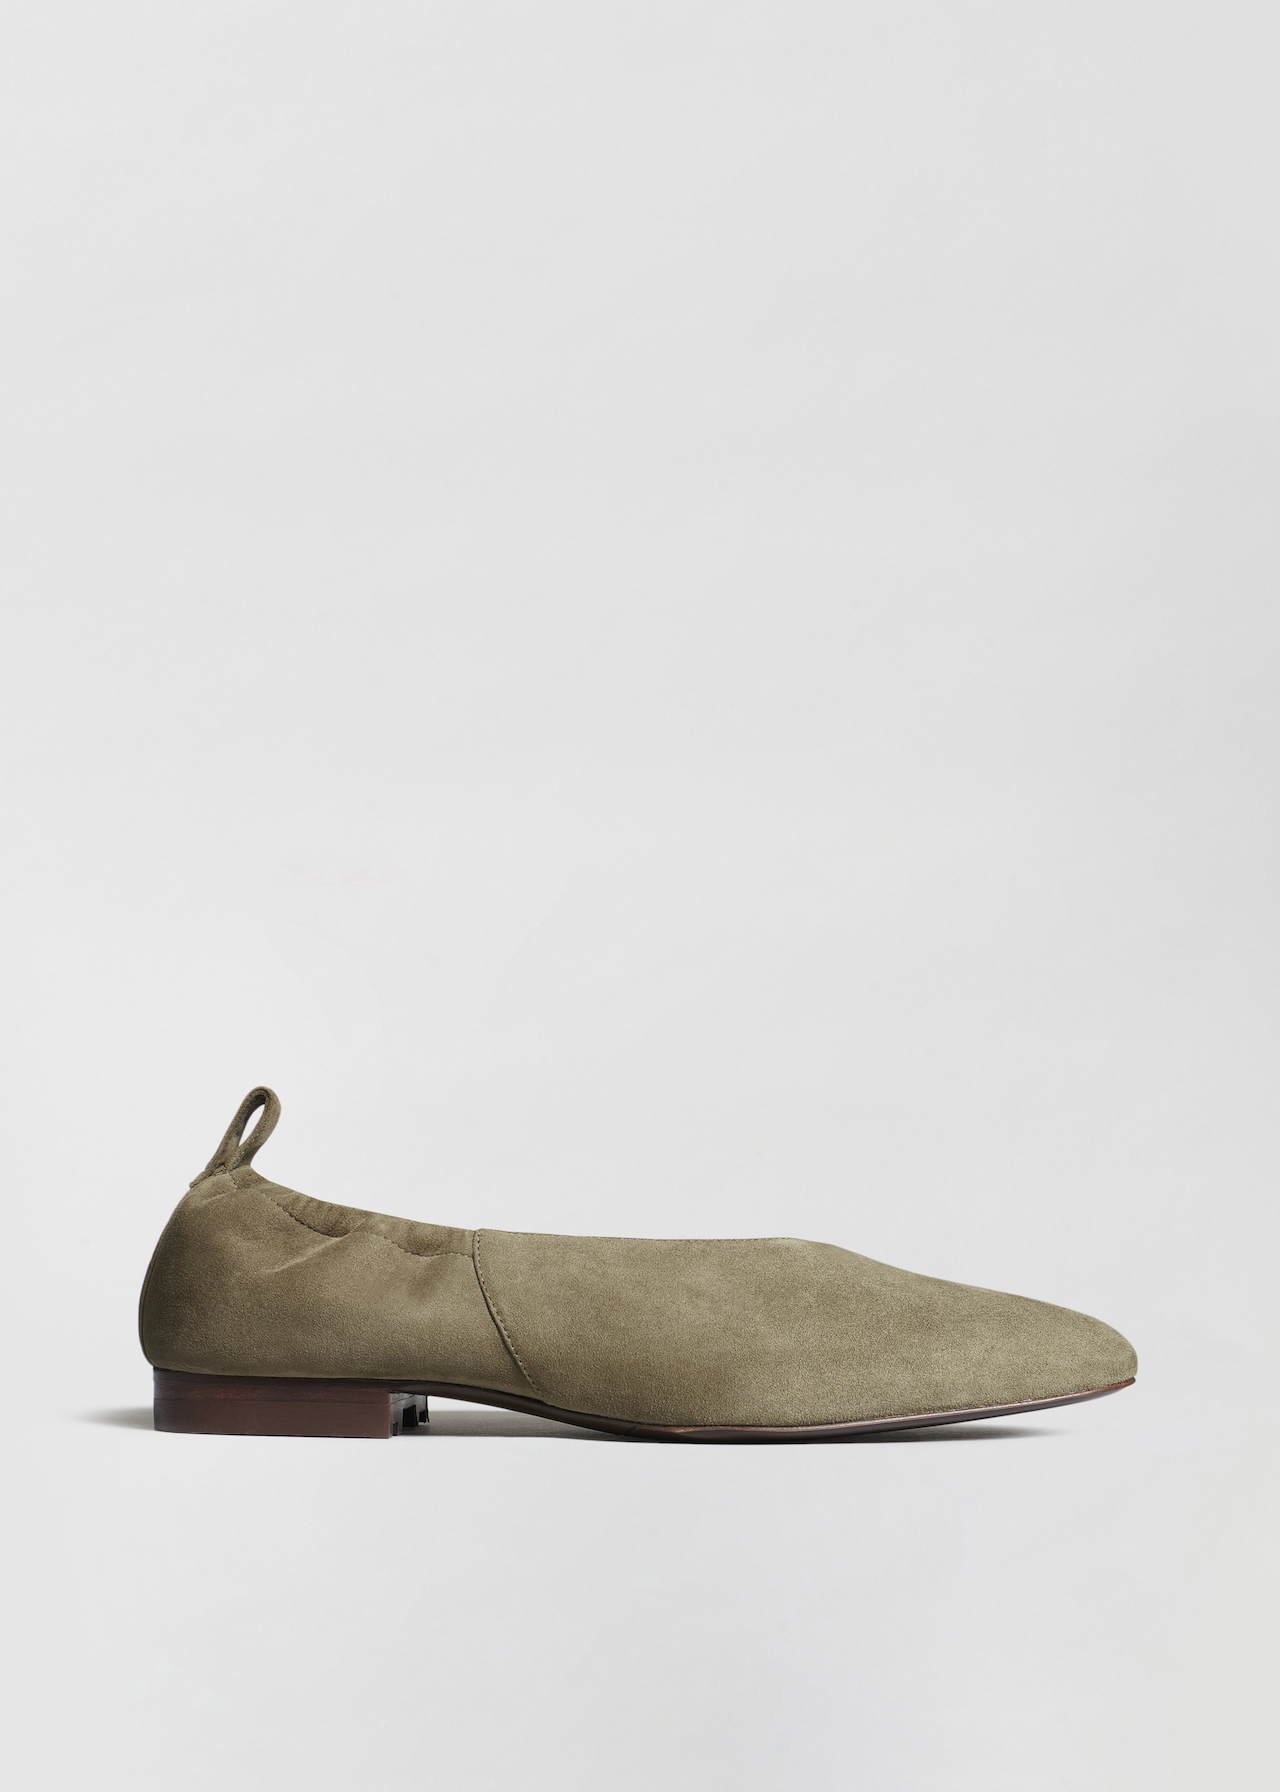 Ballet Flat in Suede - Olive - Co Collections